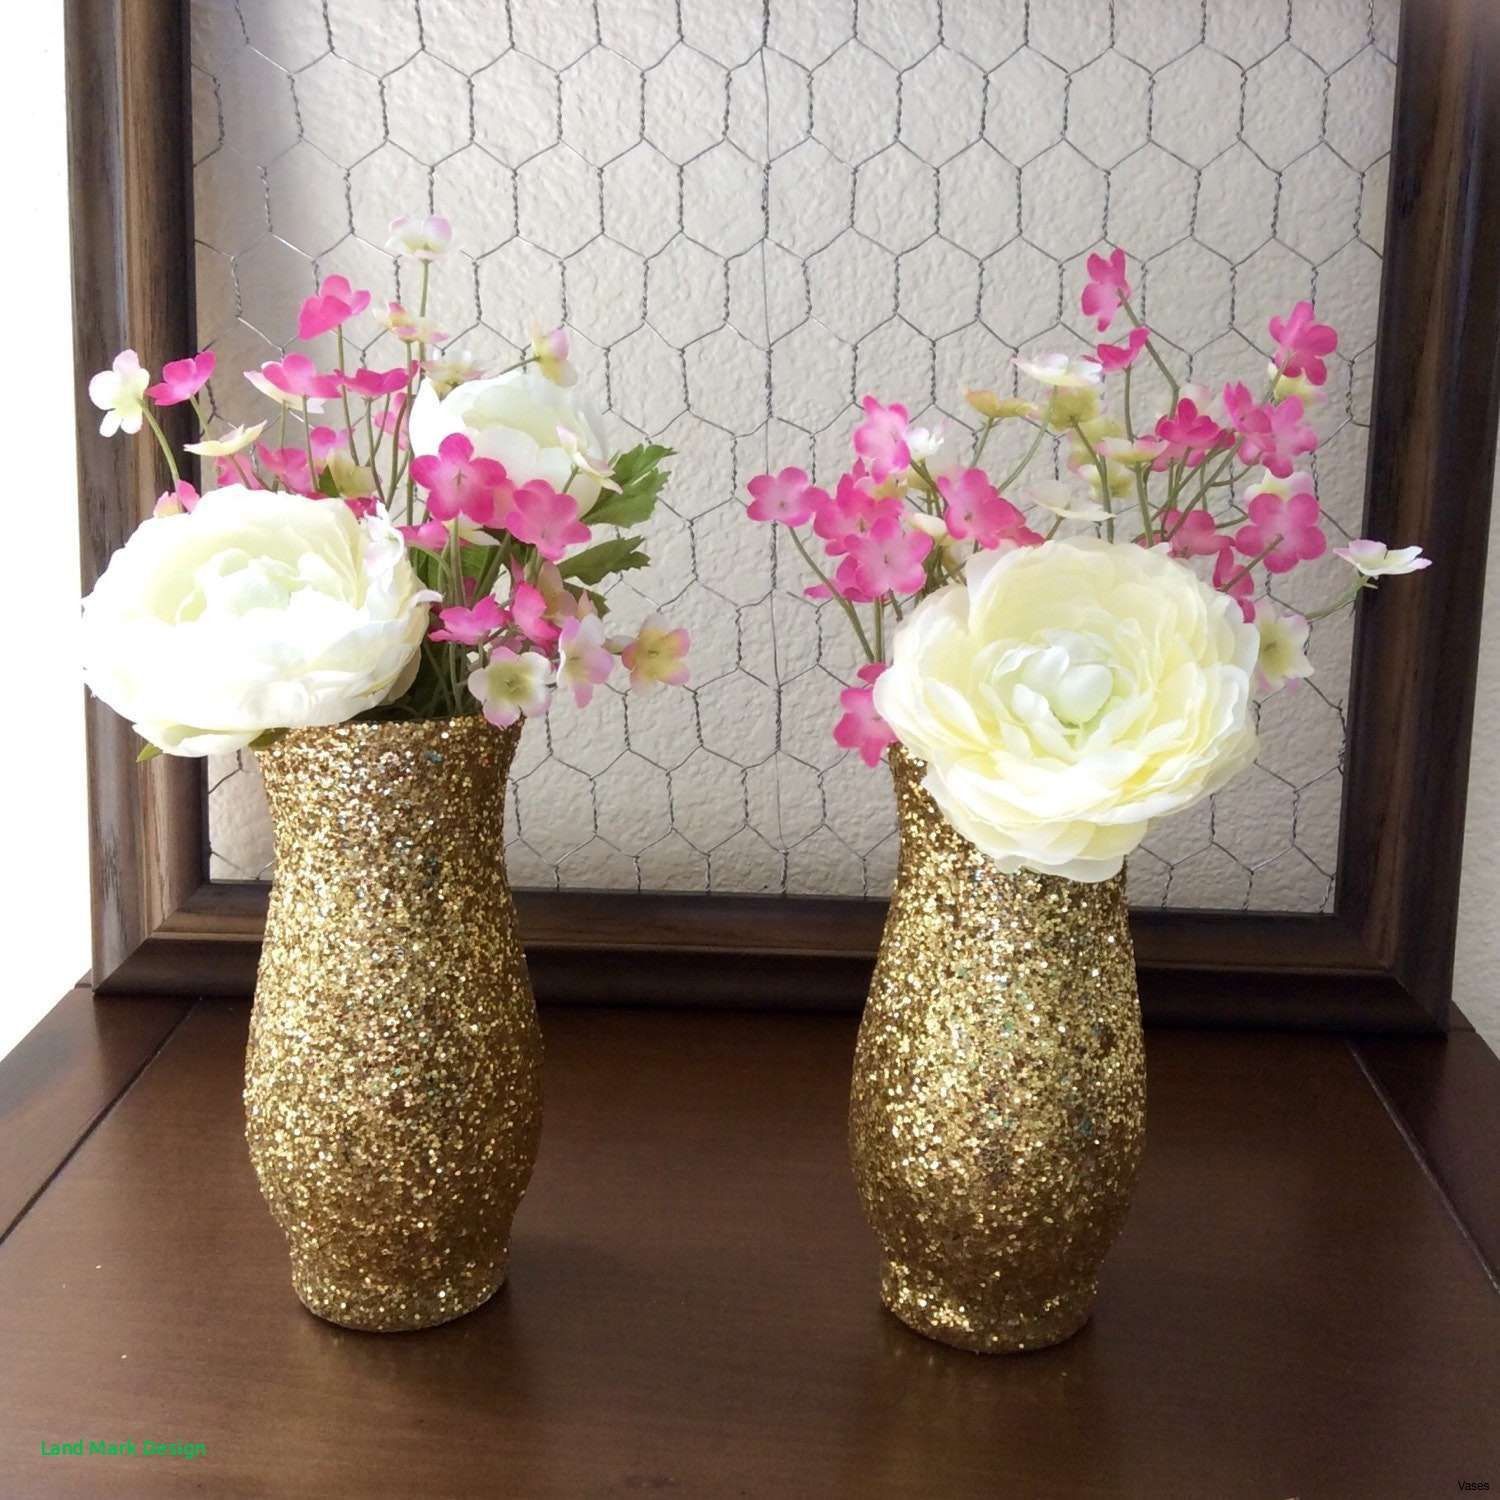 gold ceramic vase of 19 gold flower vases the weekly world within il fullxfull 3b2bh vases gold glitter vase set of 10 wedding by i 8d via ydeevnepropecia com